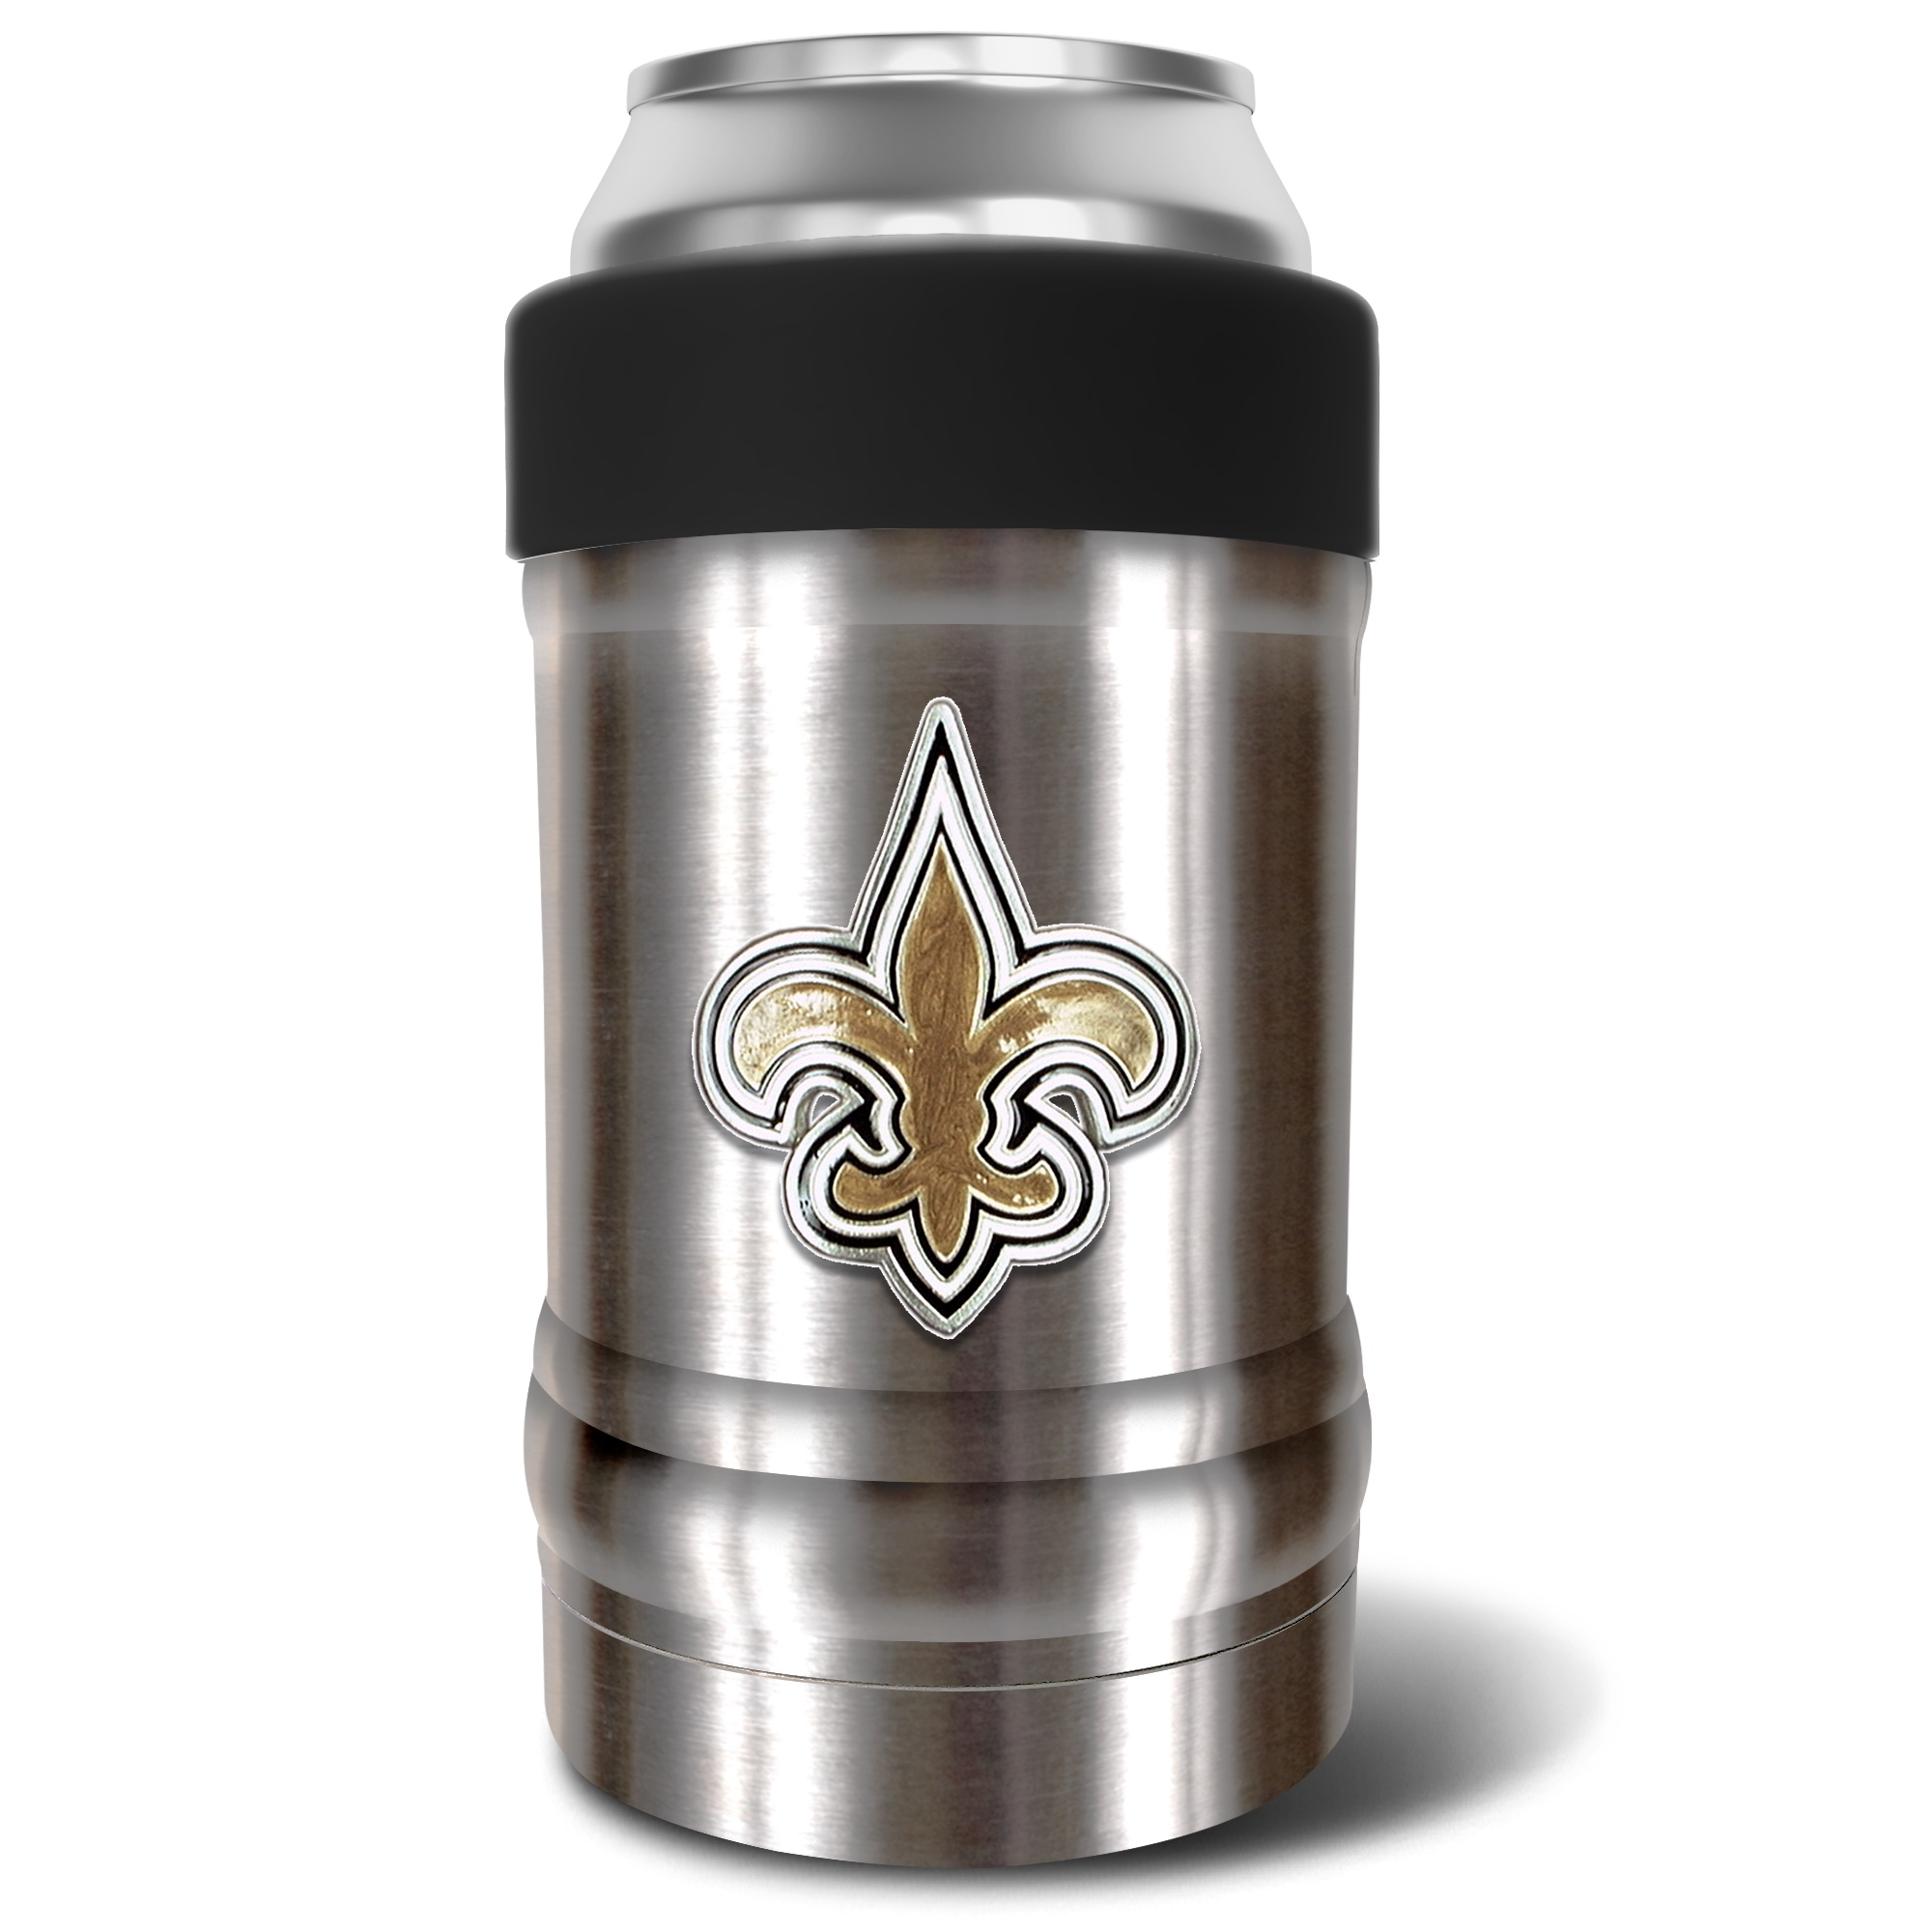 New Orleans Saints The Locker 12oz. Can Holder - Silver/Black - No Size